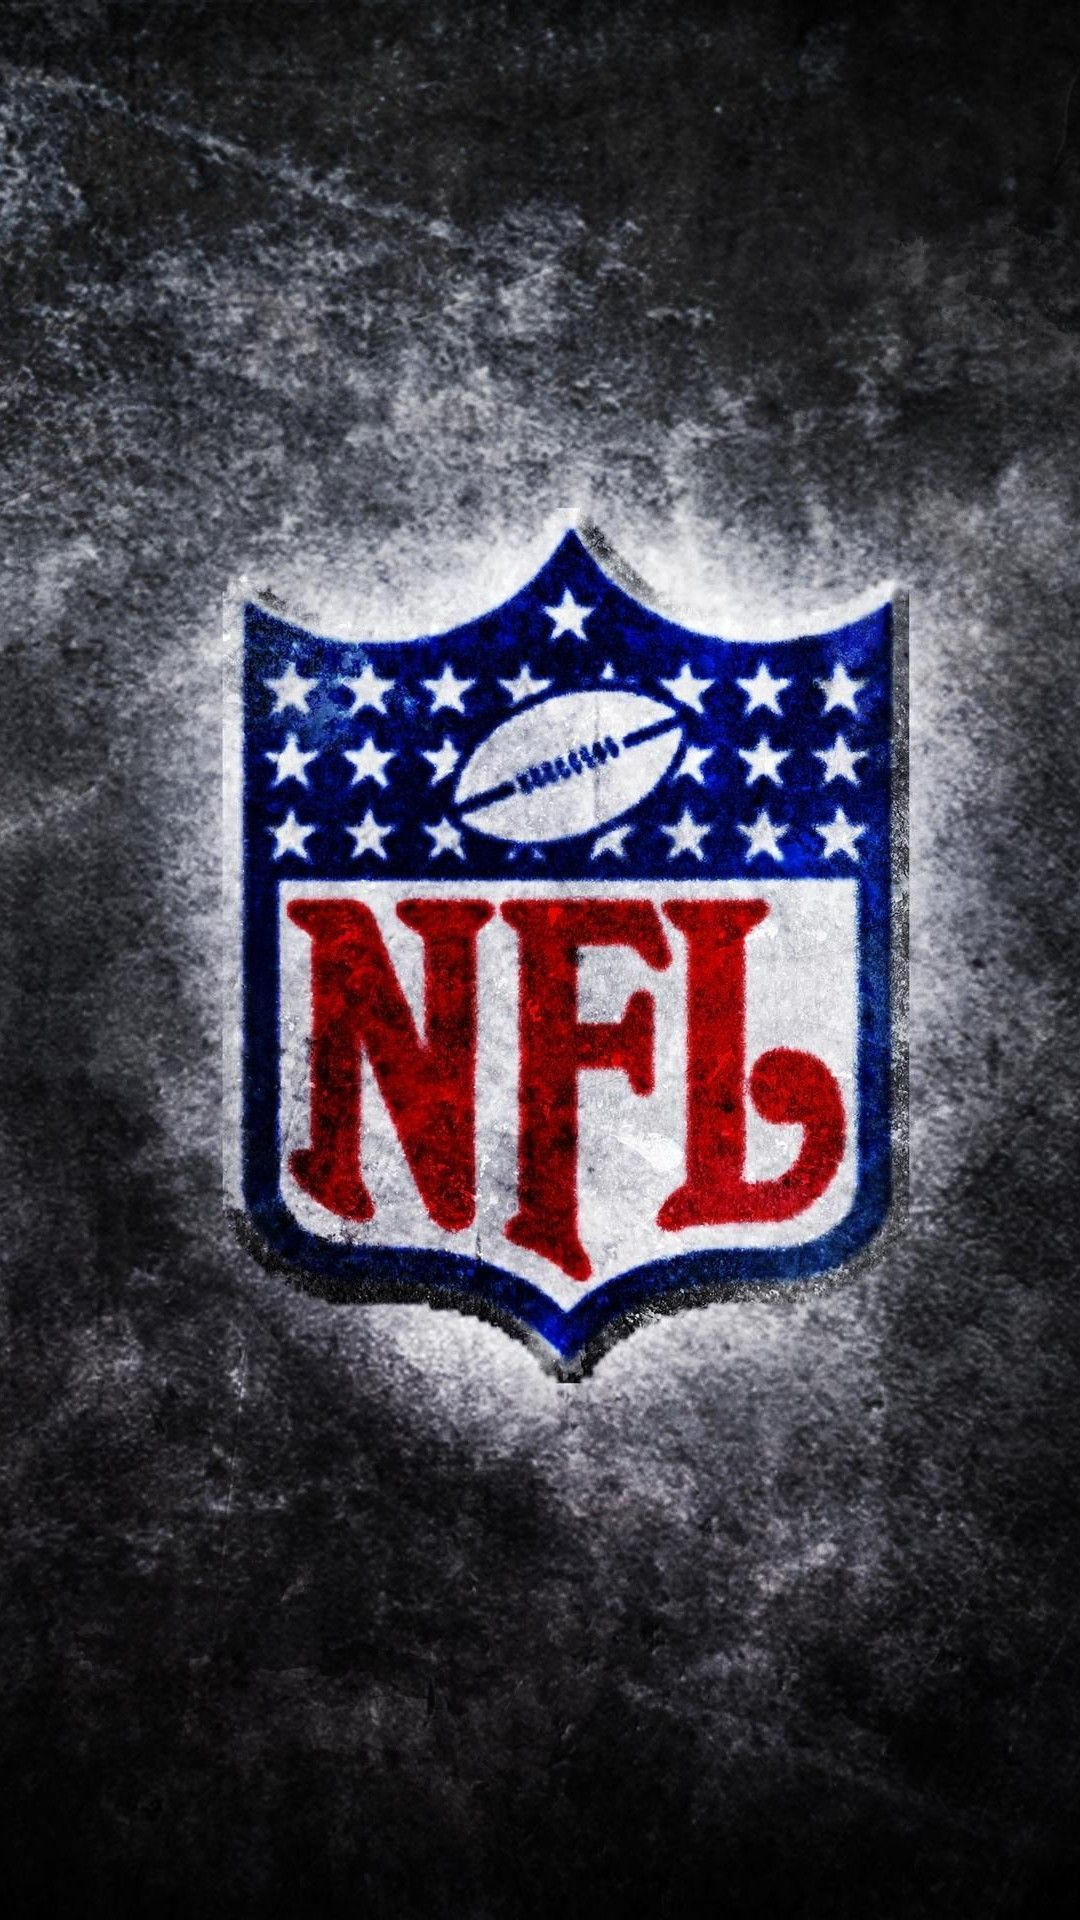 NFL Wallpapers Nfl football wallpaper, Football